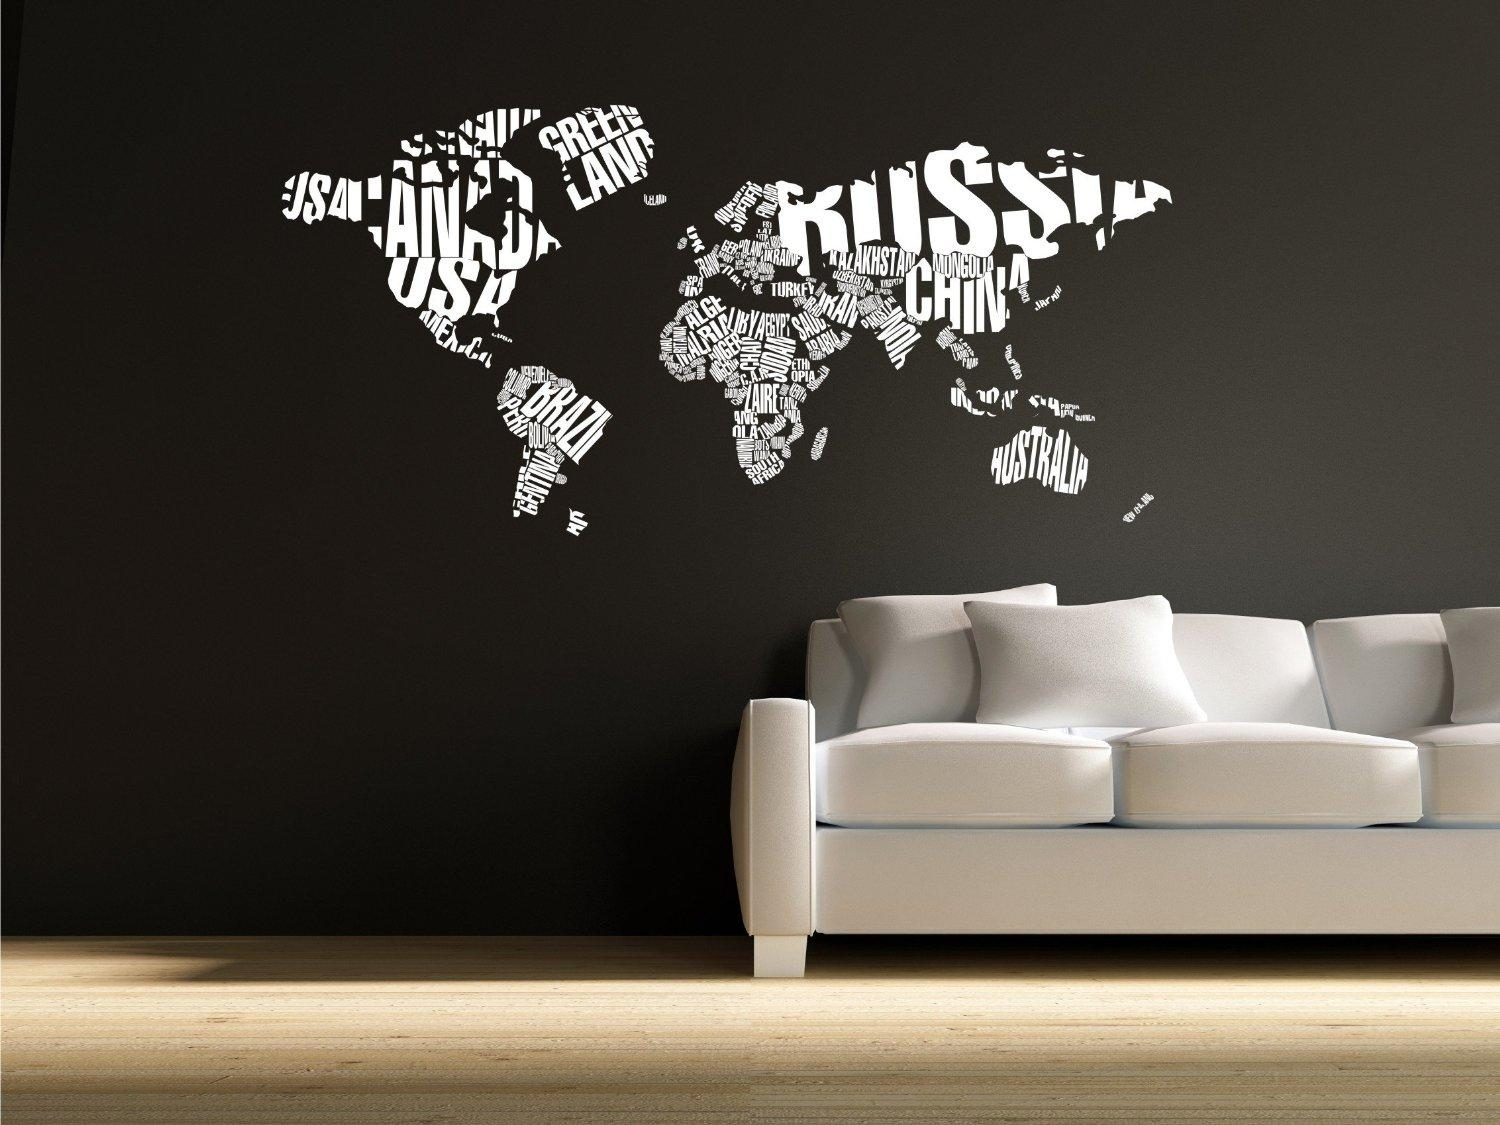 Wall Decal Design (View 5 of 17)